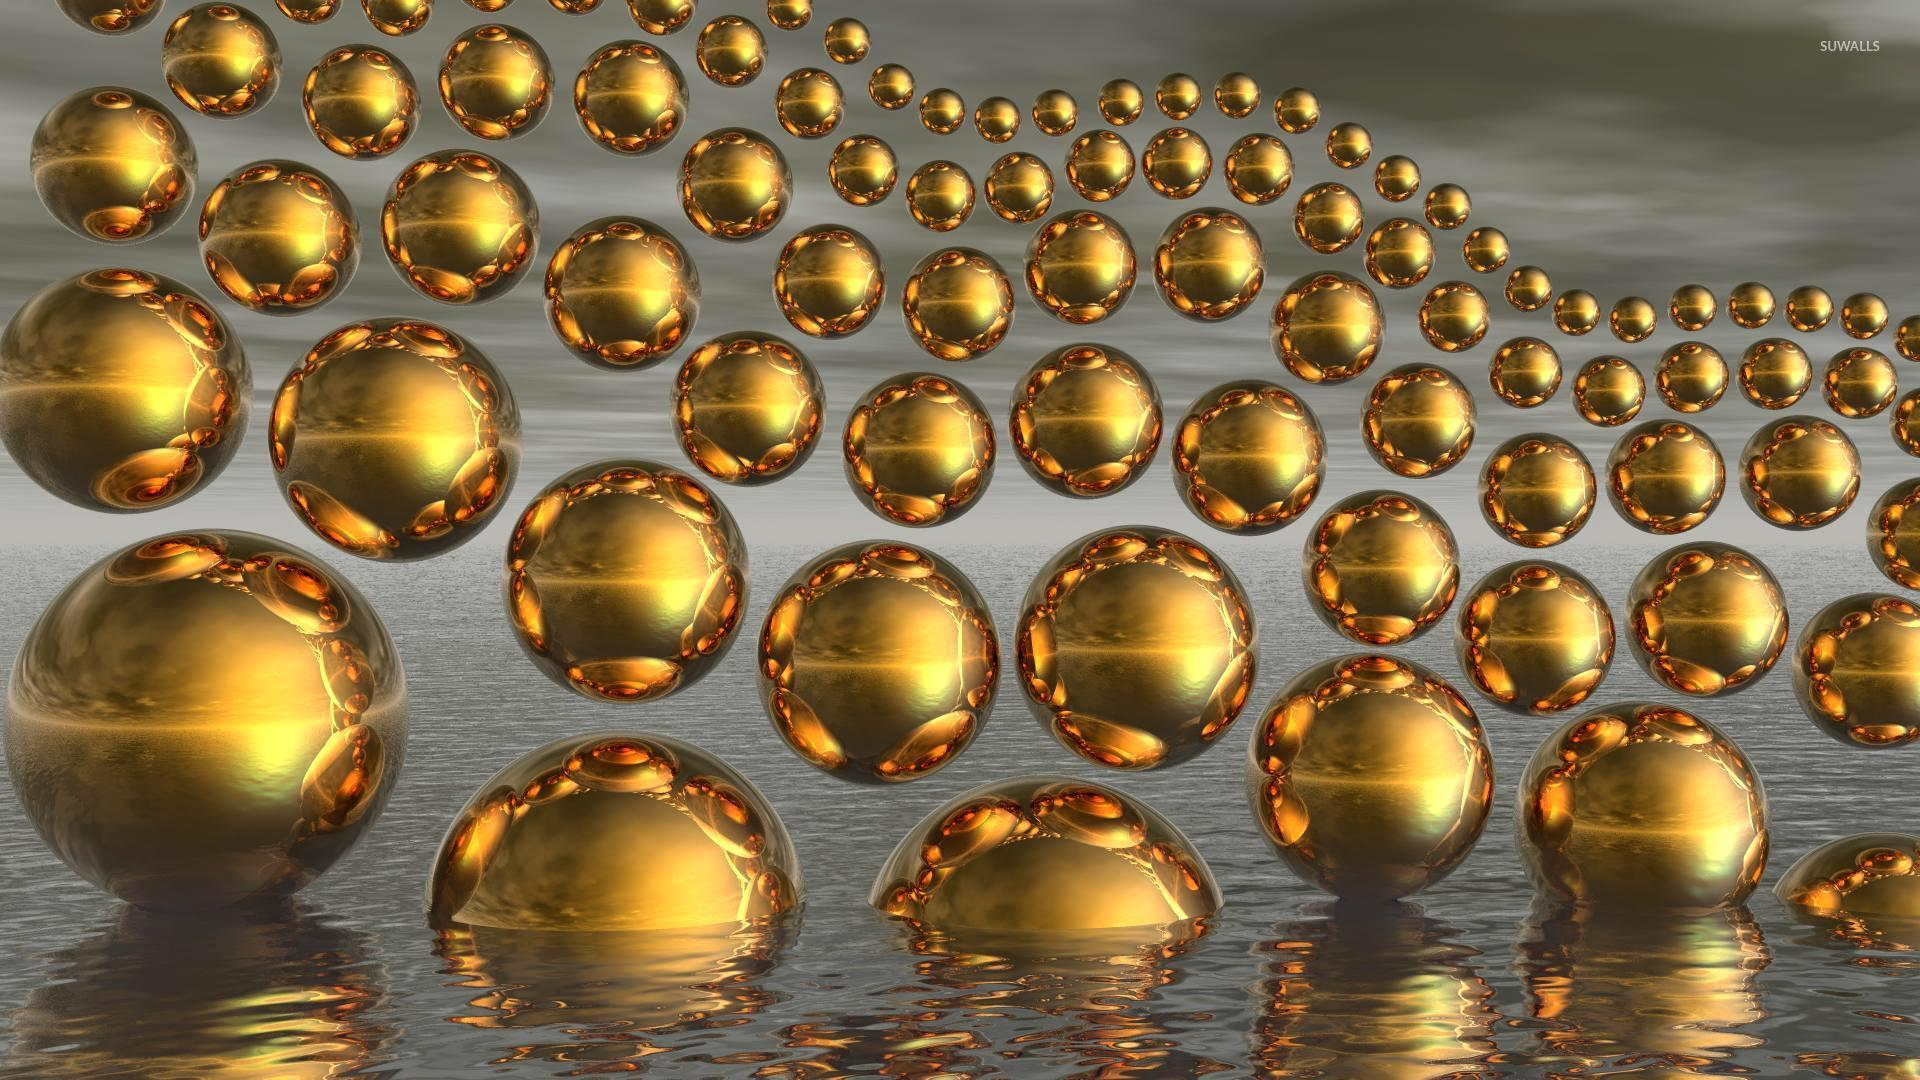 Gold spheres wallpaper 3d wallpapers 10564 for Gold 3d wallpaper